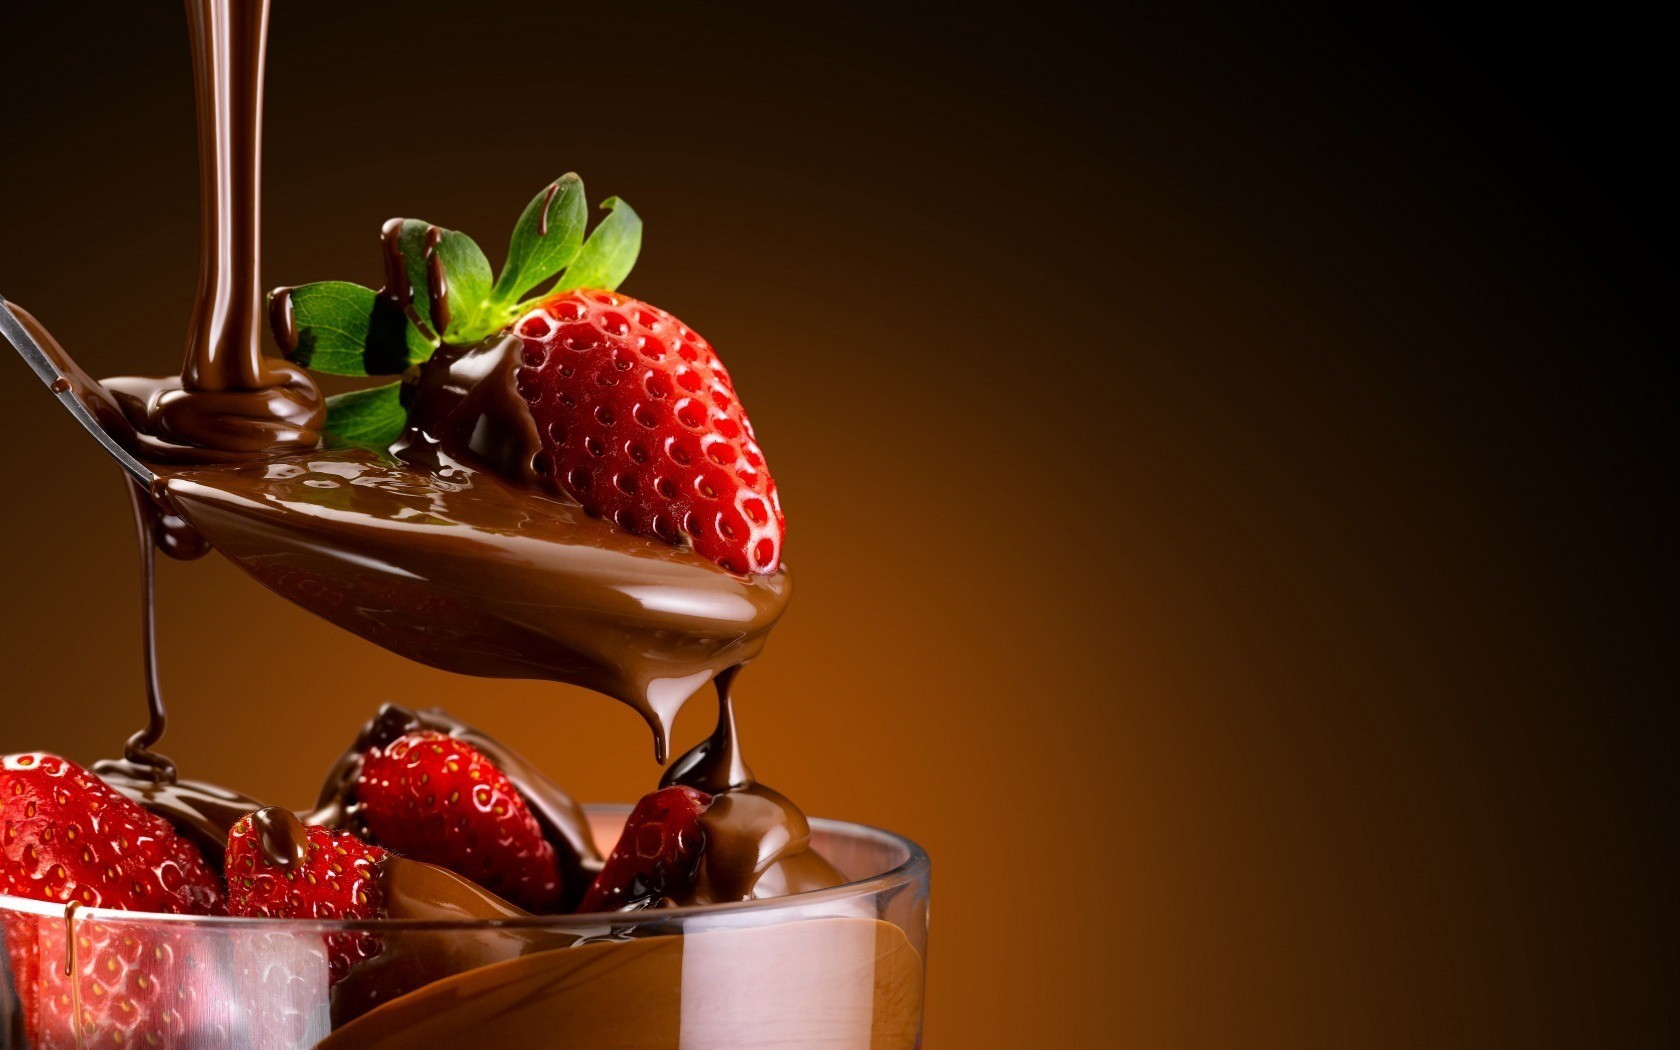 4k Berries In Chocolate Wallpapers High Quality Download